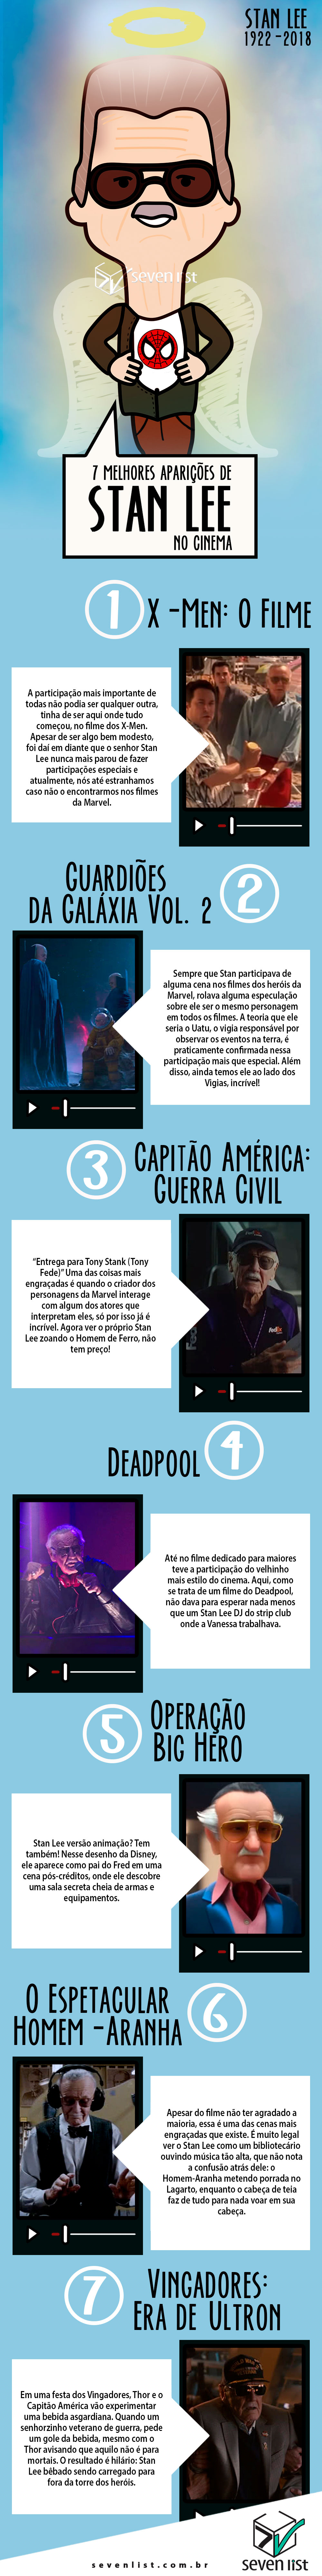 homenagem do seven list a stan lee